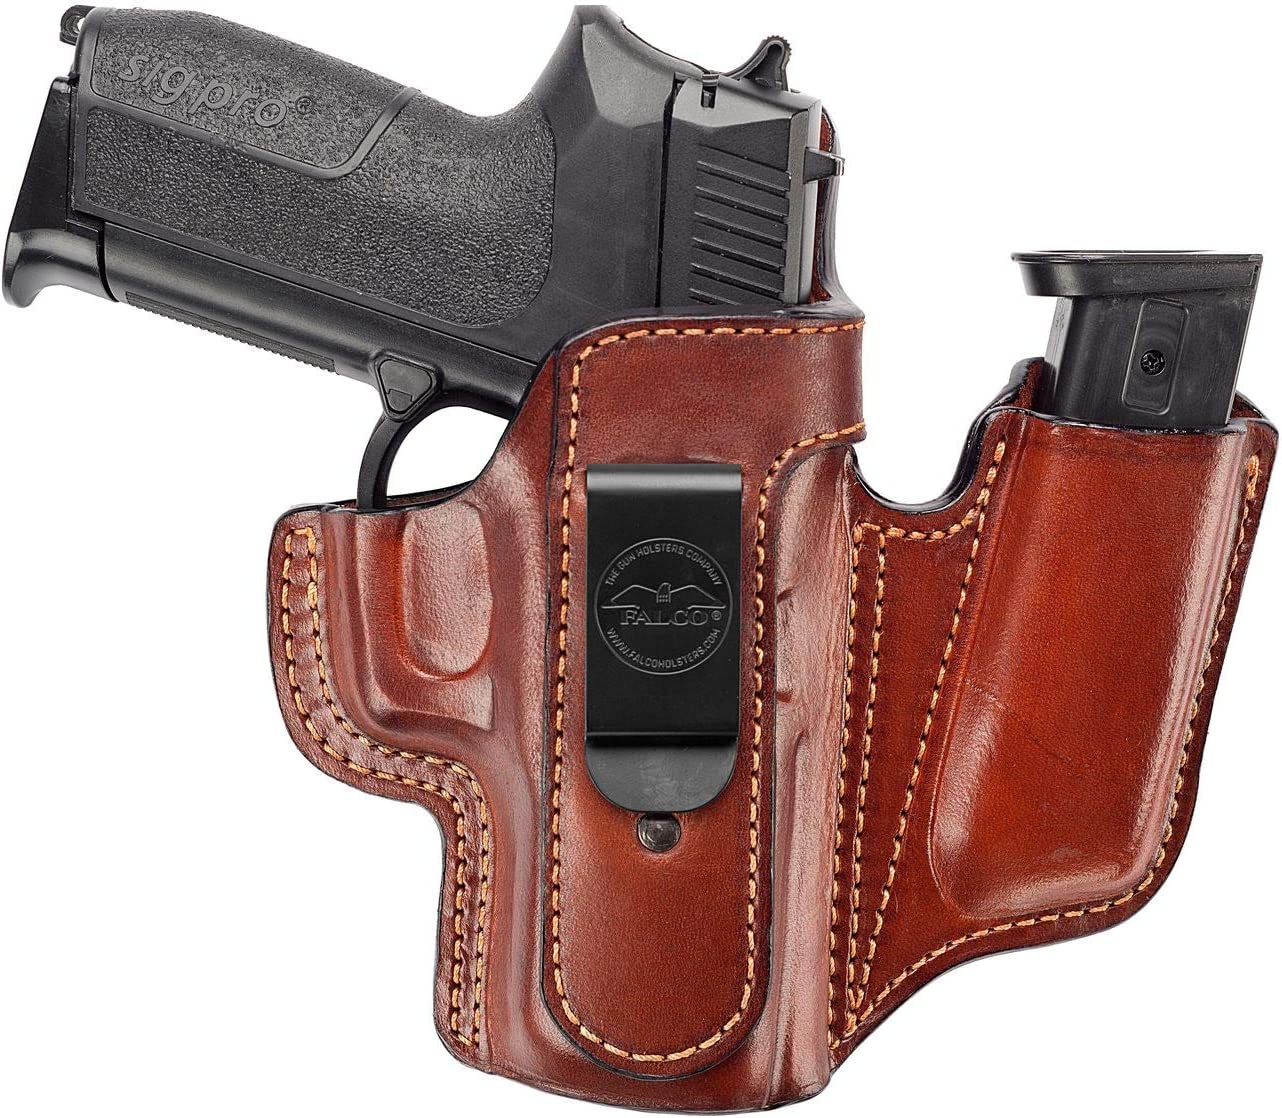 Craft Holsters Cabot Guns All stores are sold discount The Black Hols Diamond Compatible 5